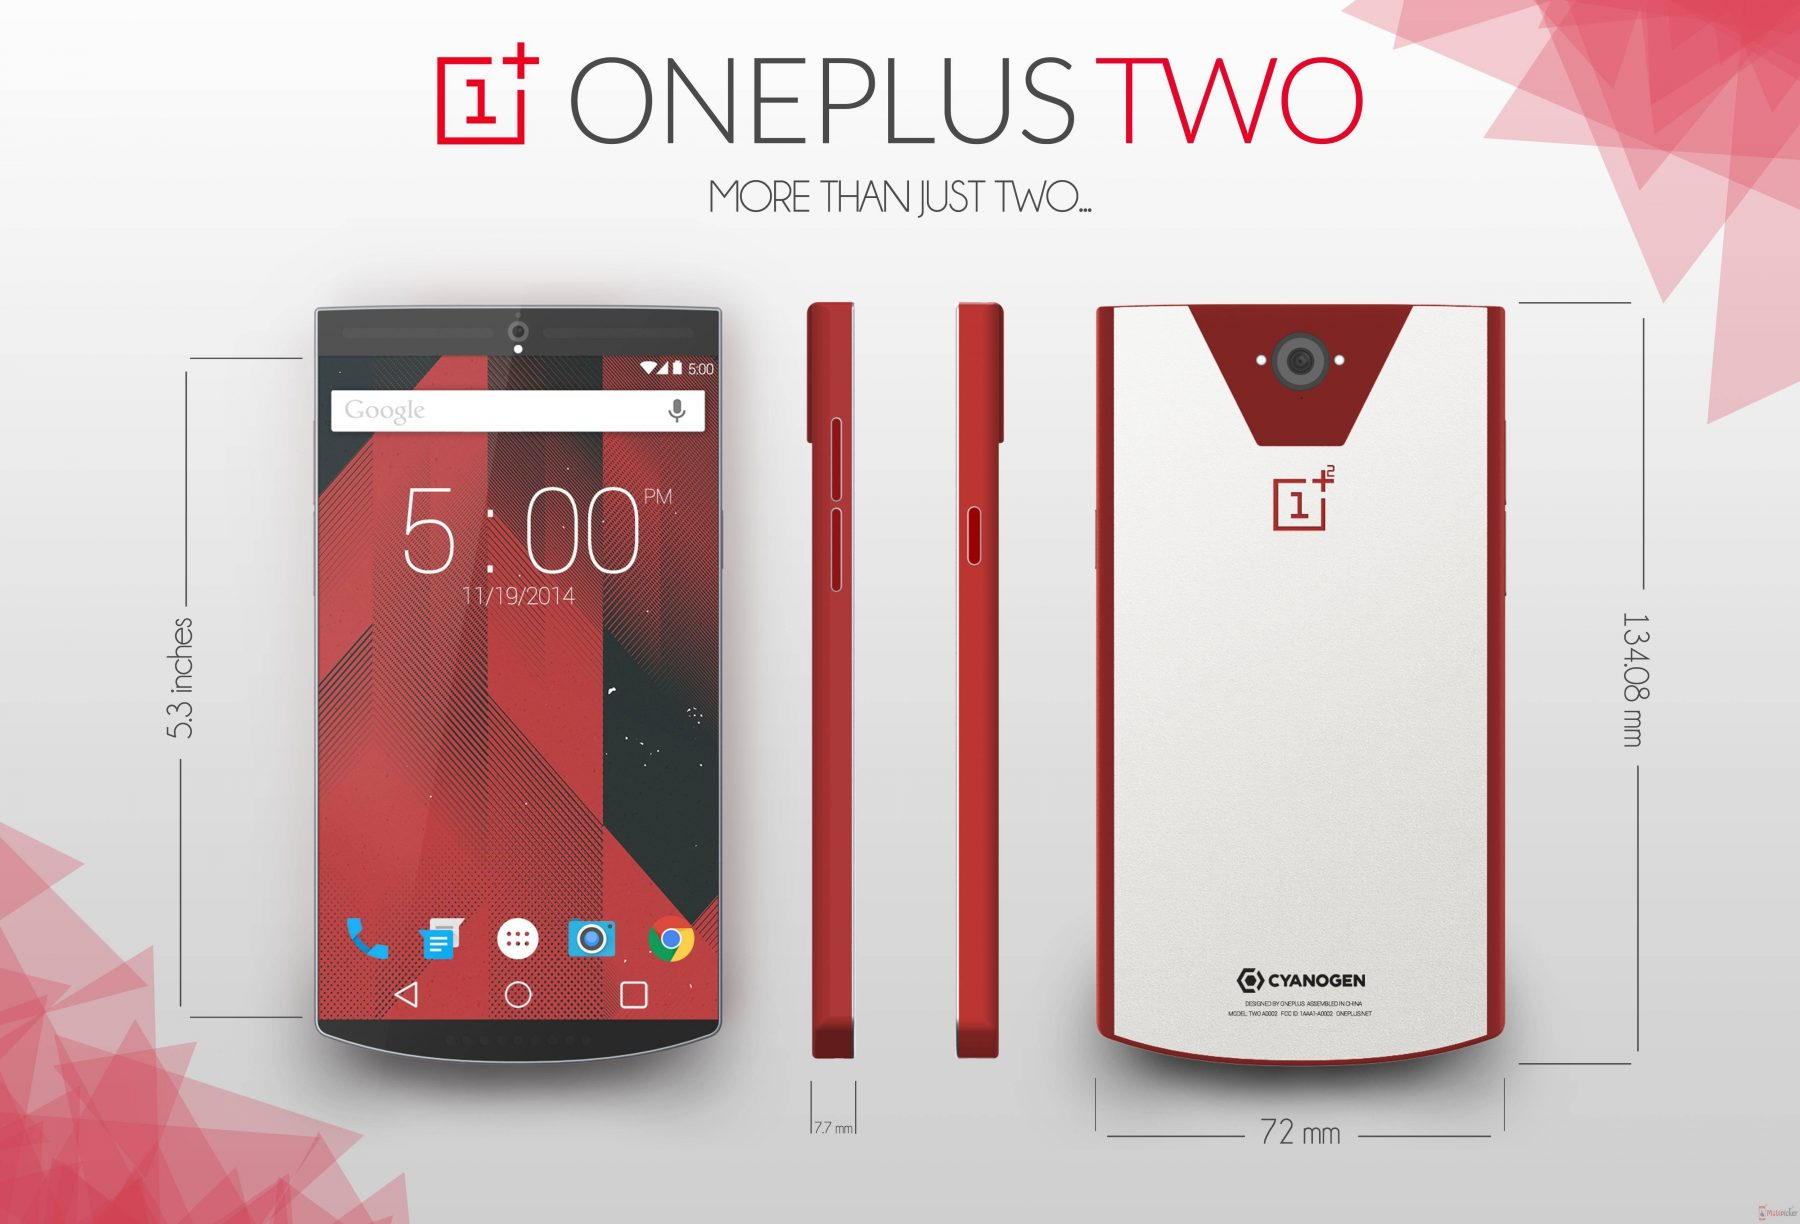 OnePlus, Two, image, photo, smartphone